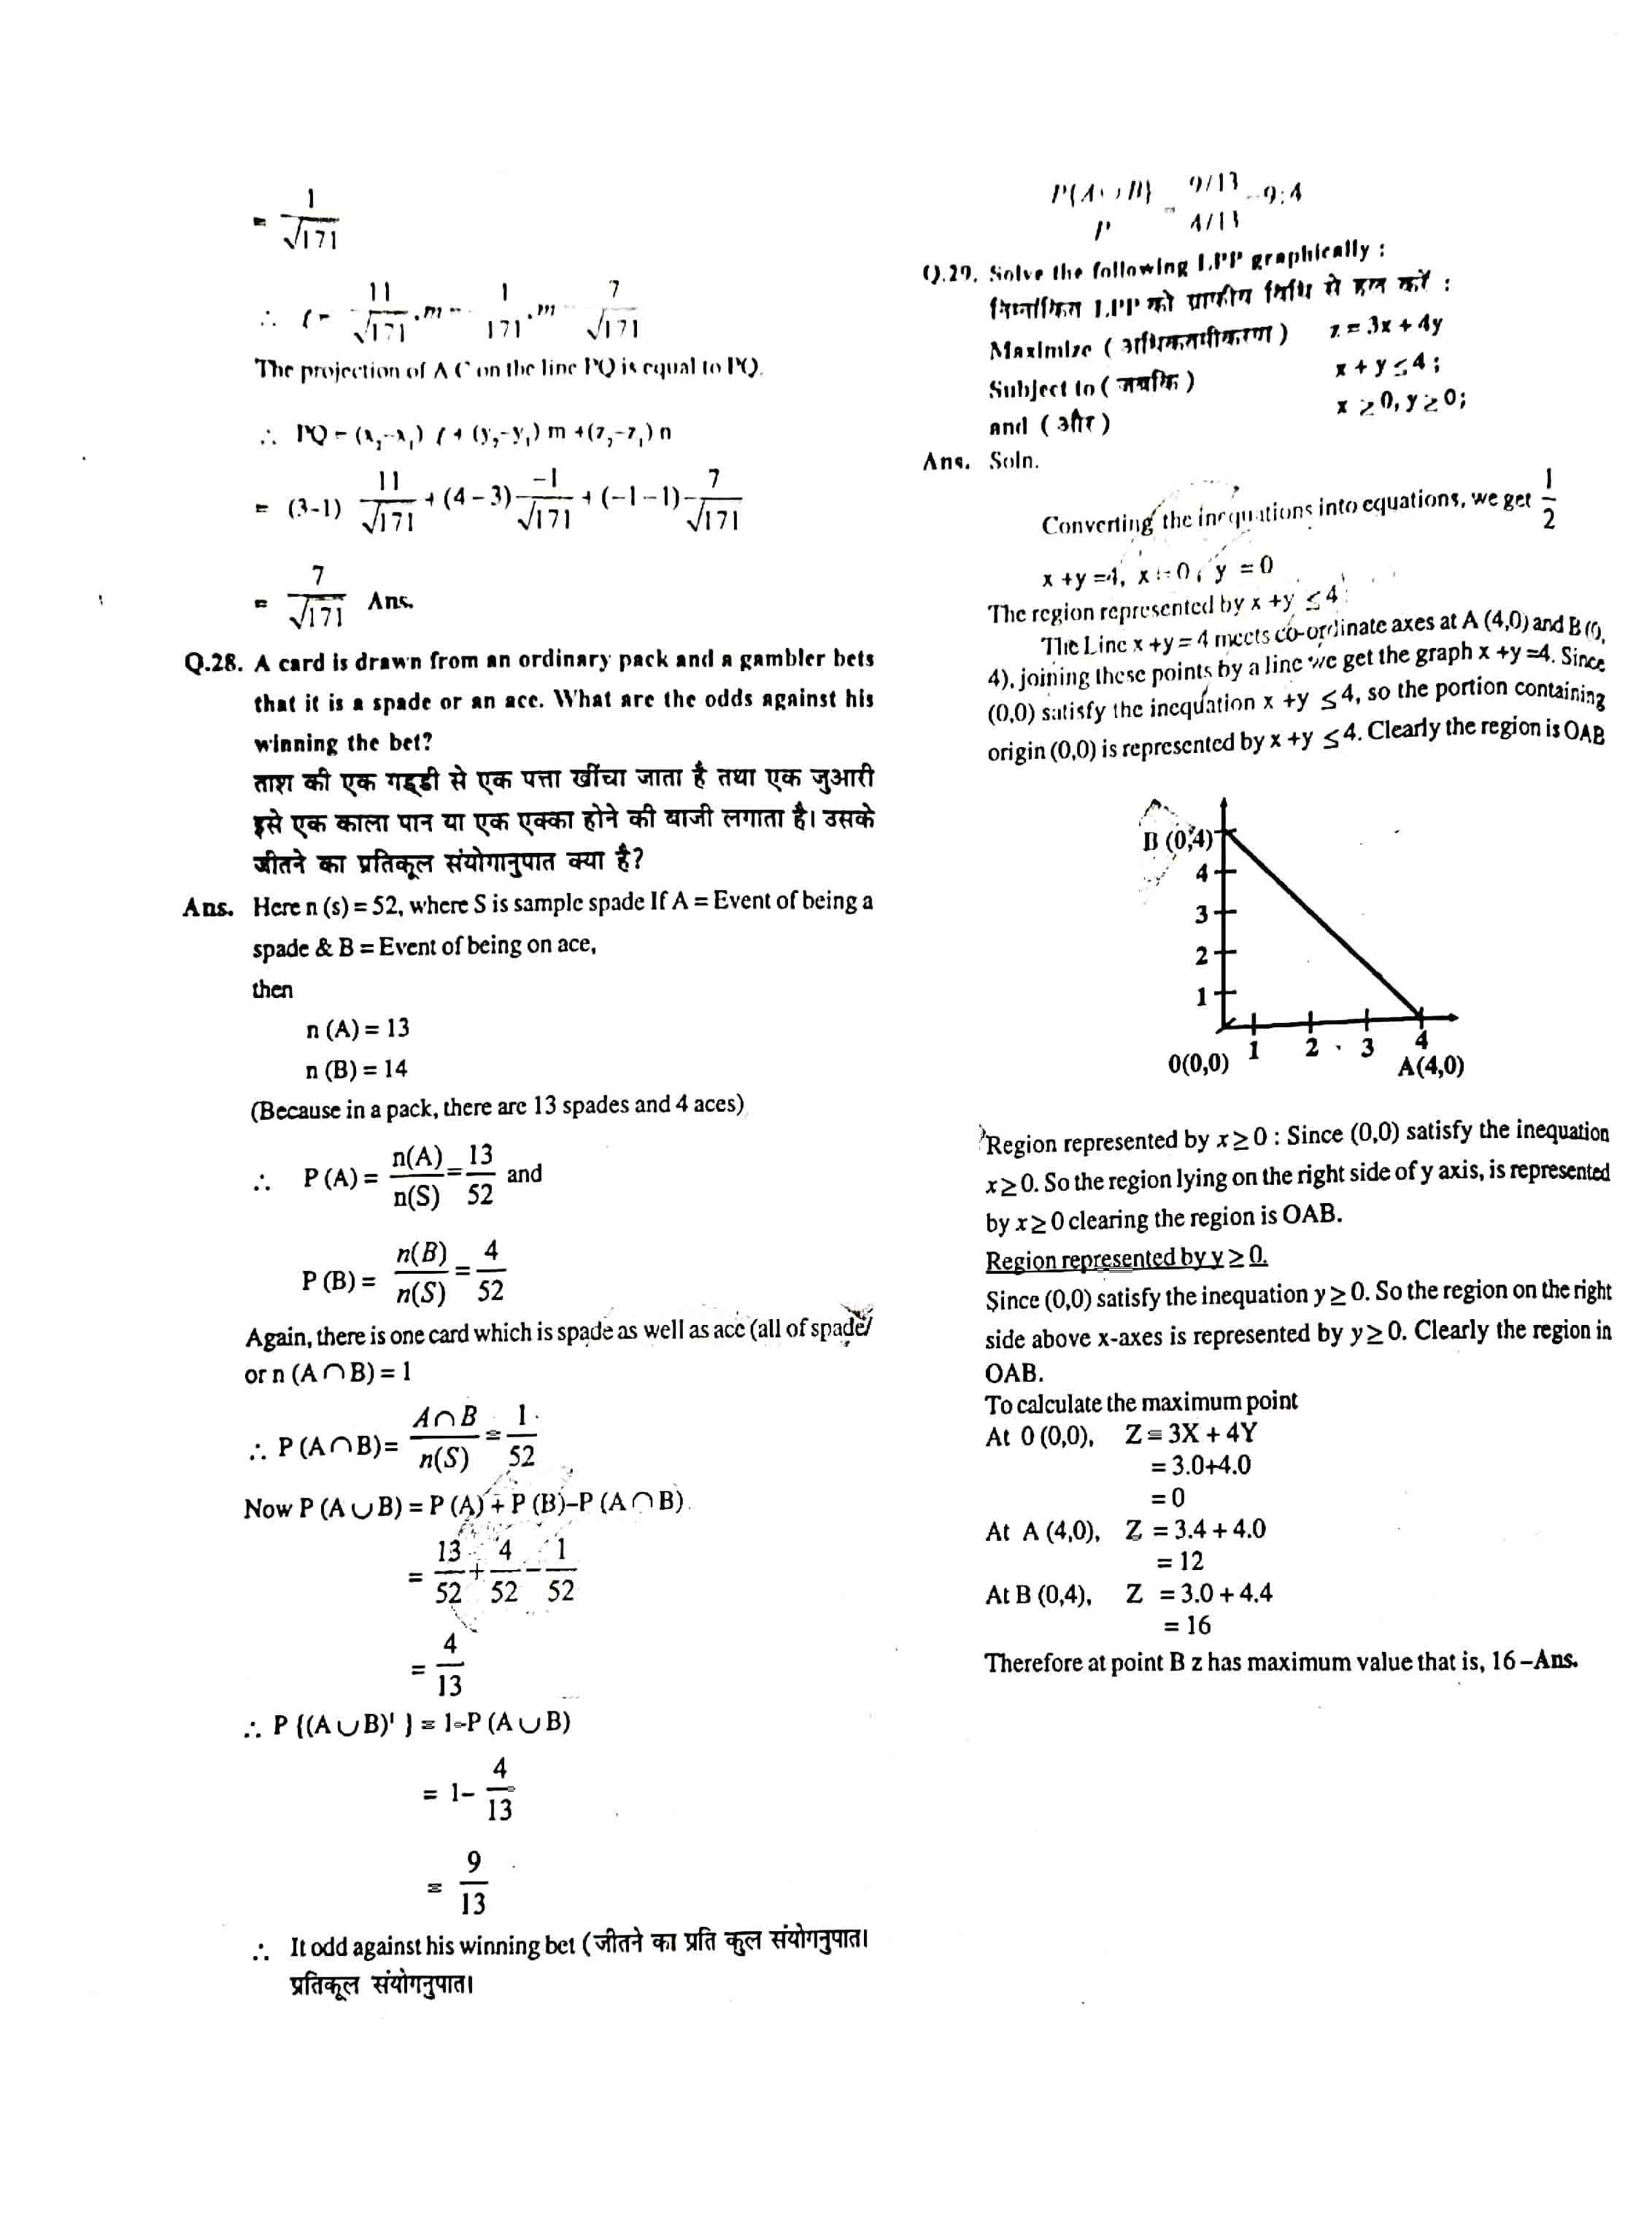 JAC Class 12 math 2012 Question Paper 09